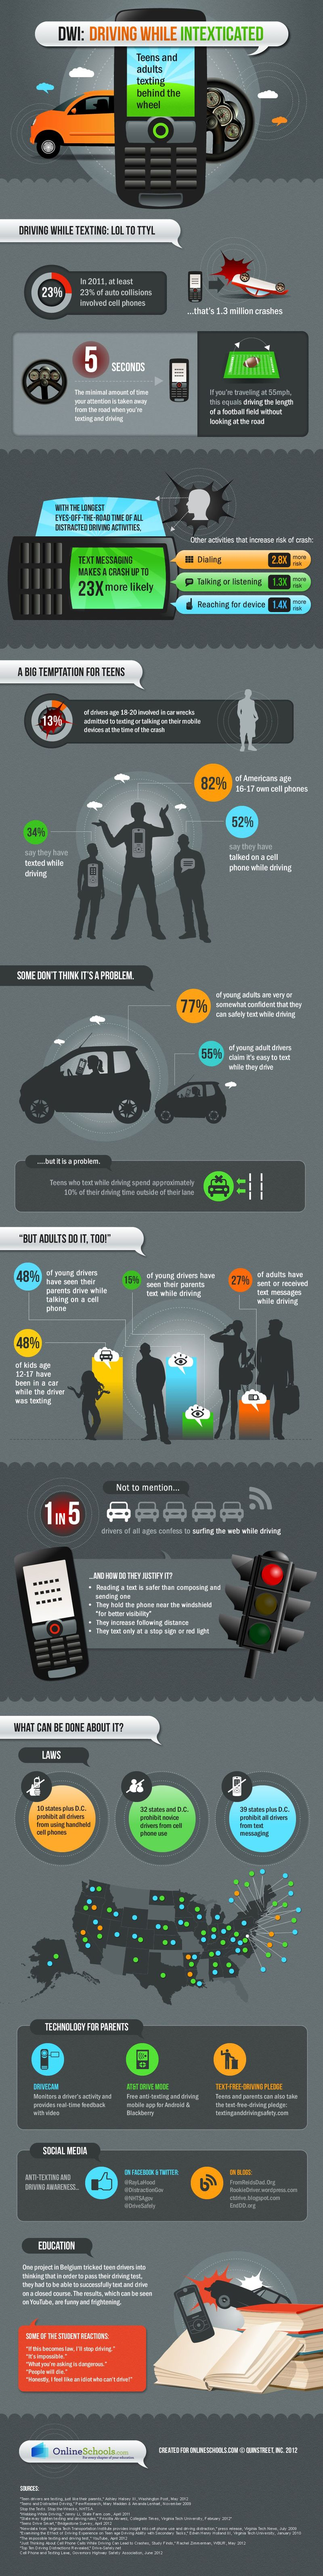 Texting and Driving Stats - Family Pipeline